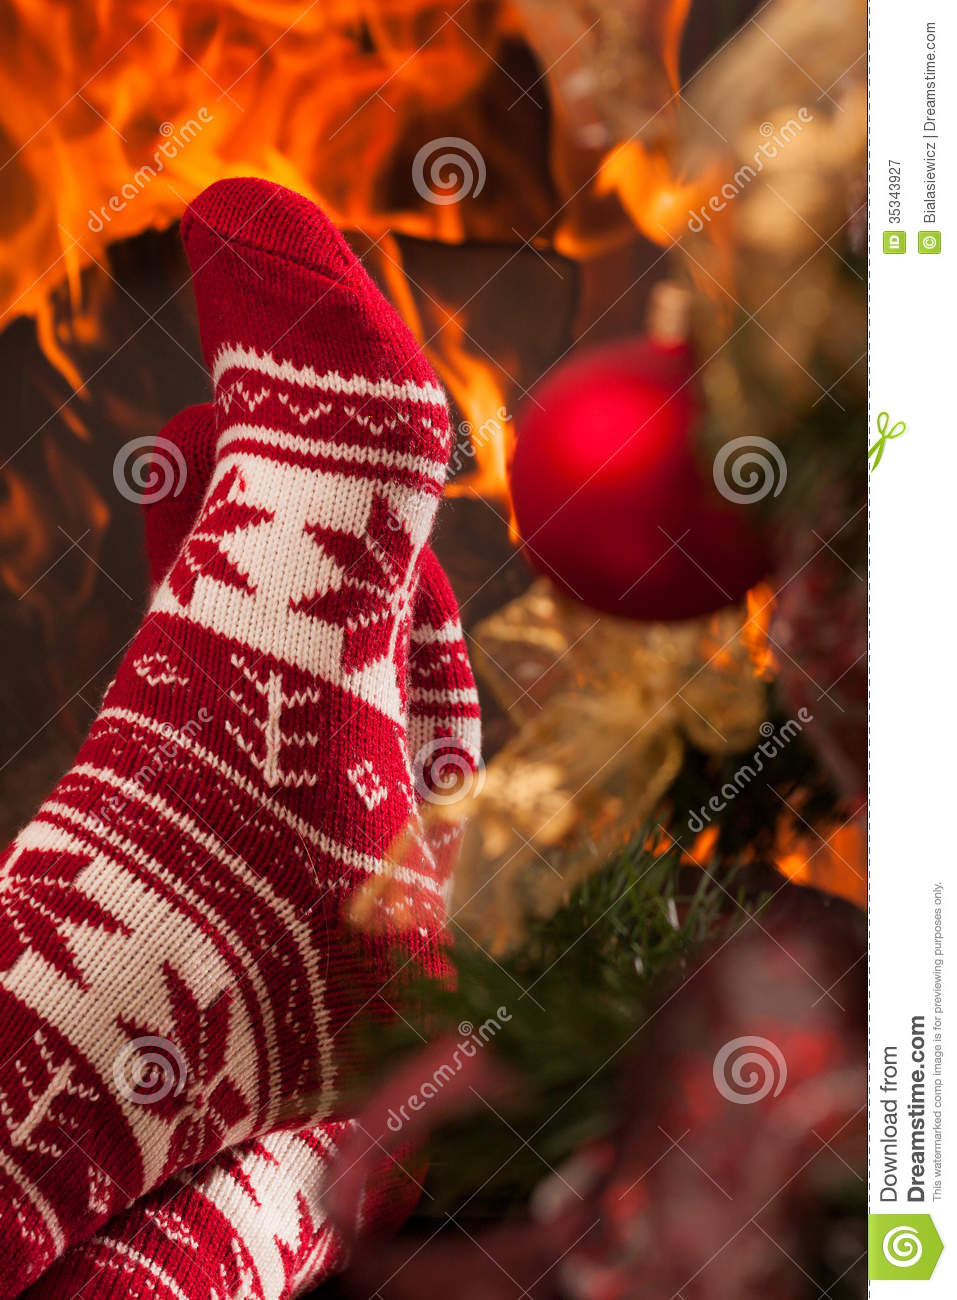 Relax In Christmas Ambiance Royalty Free Stock